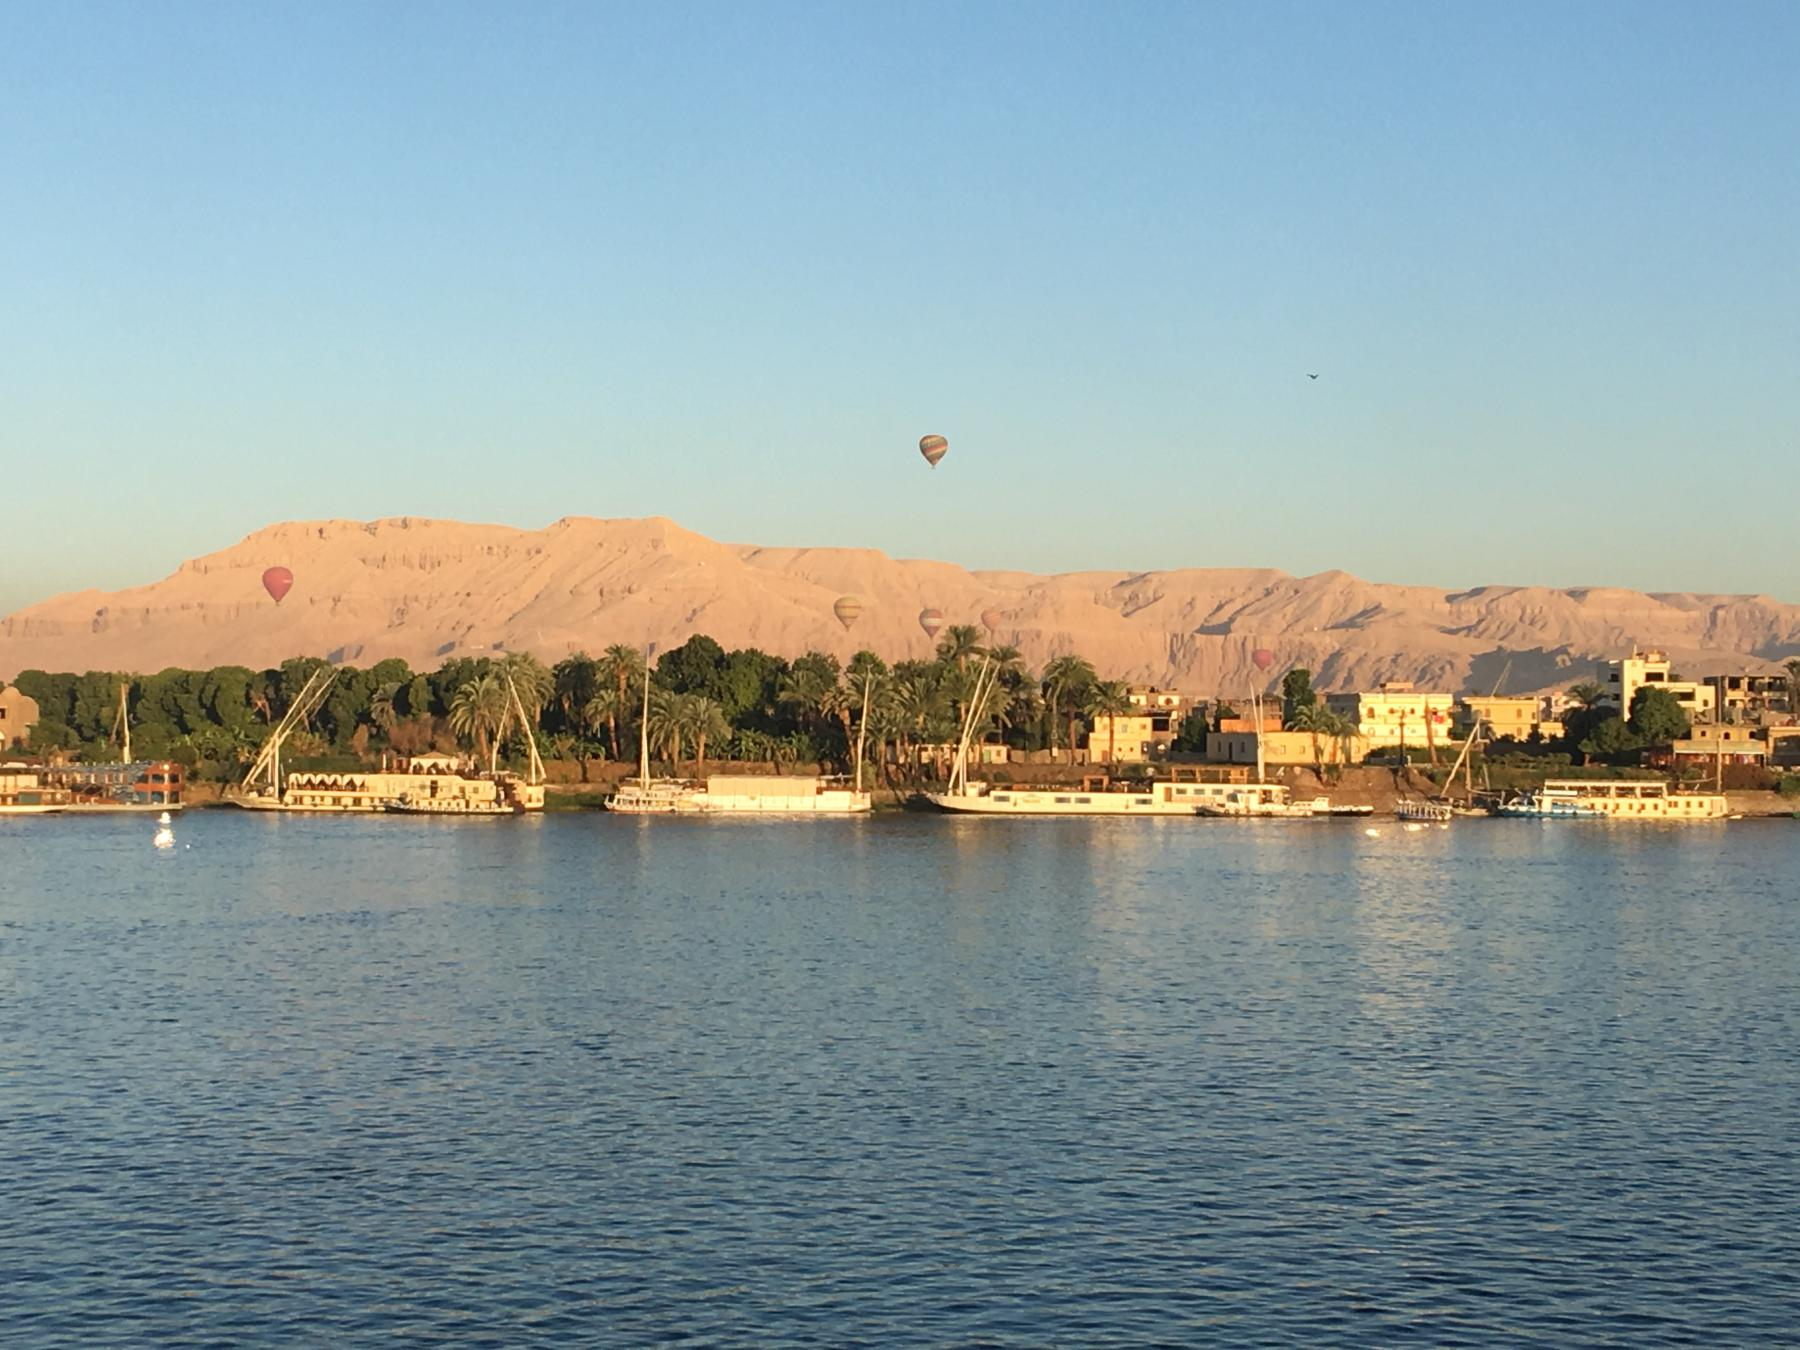 Balloons rising over the Valley of the Kings